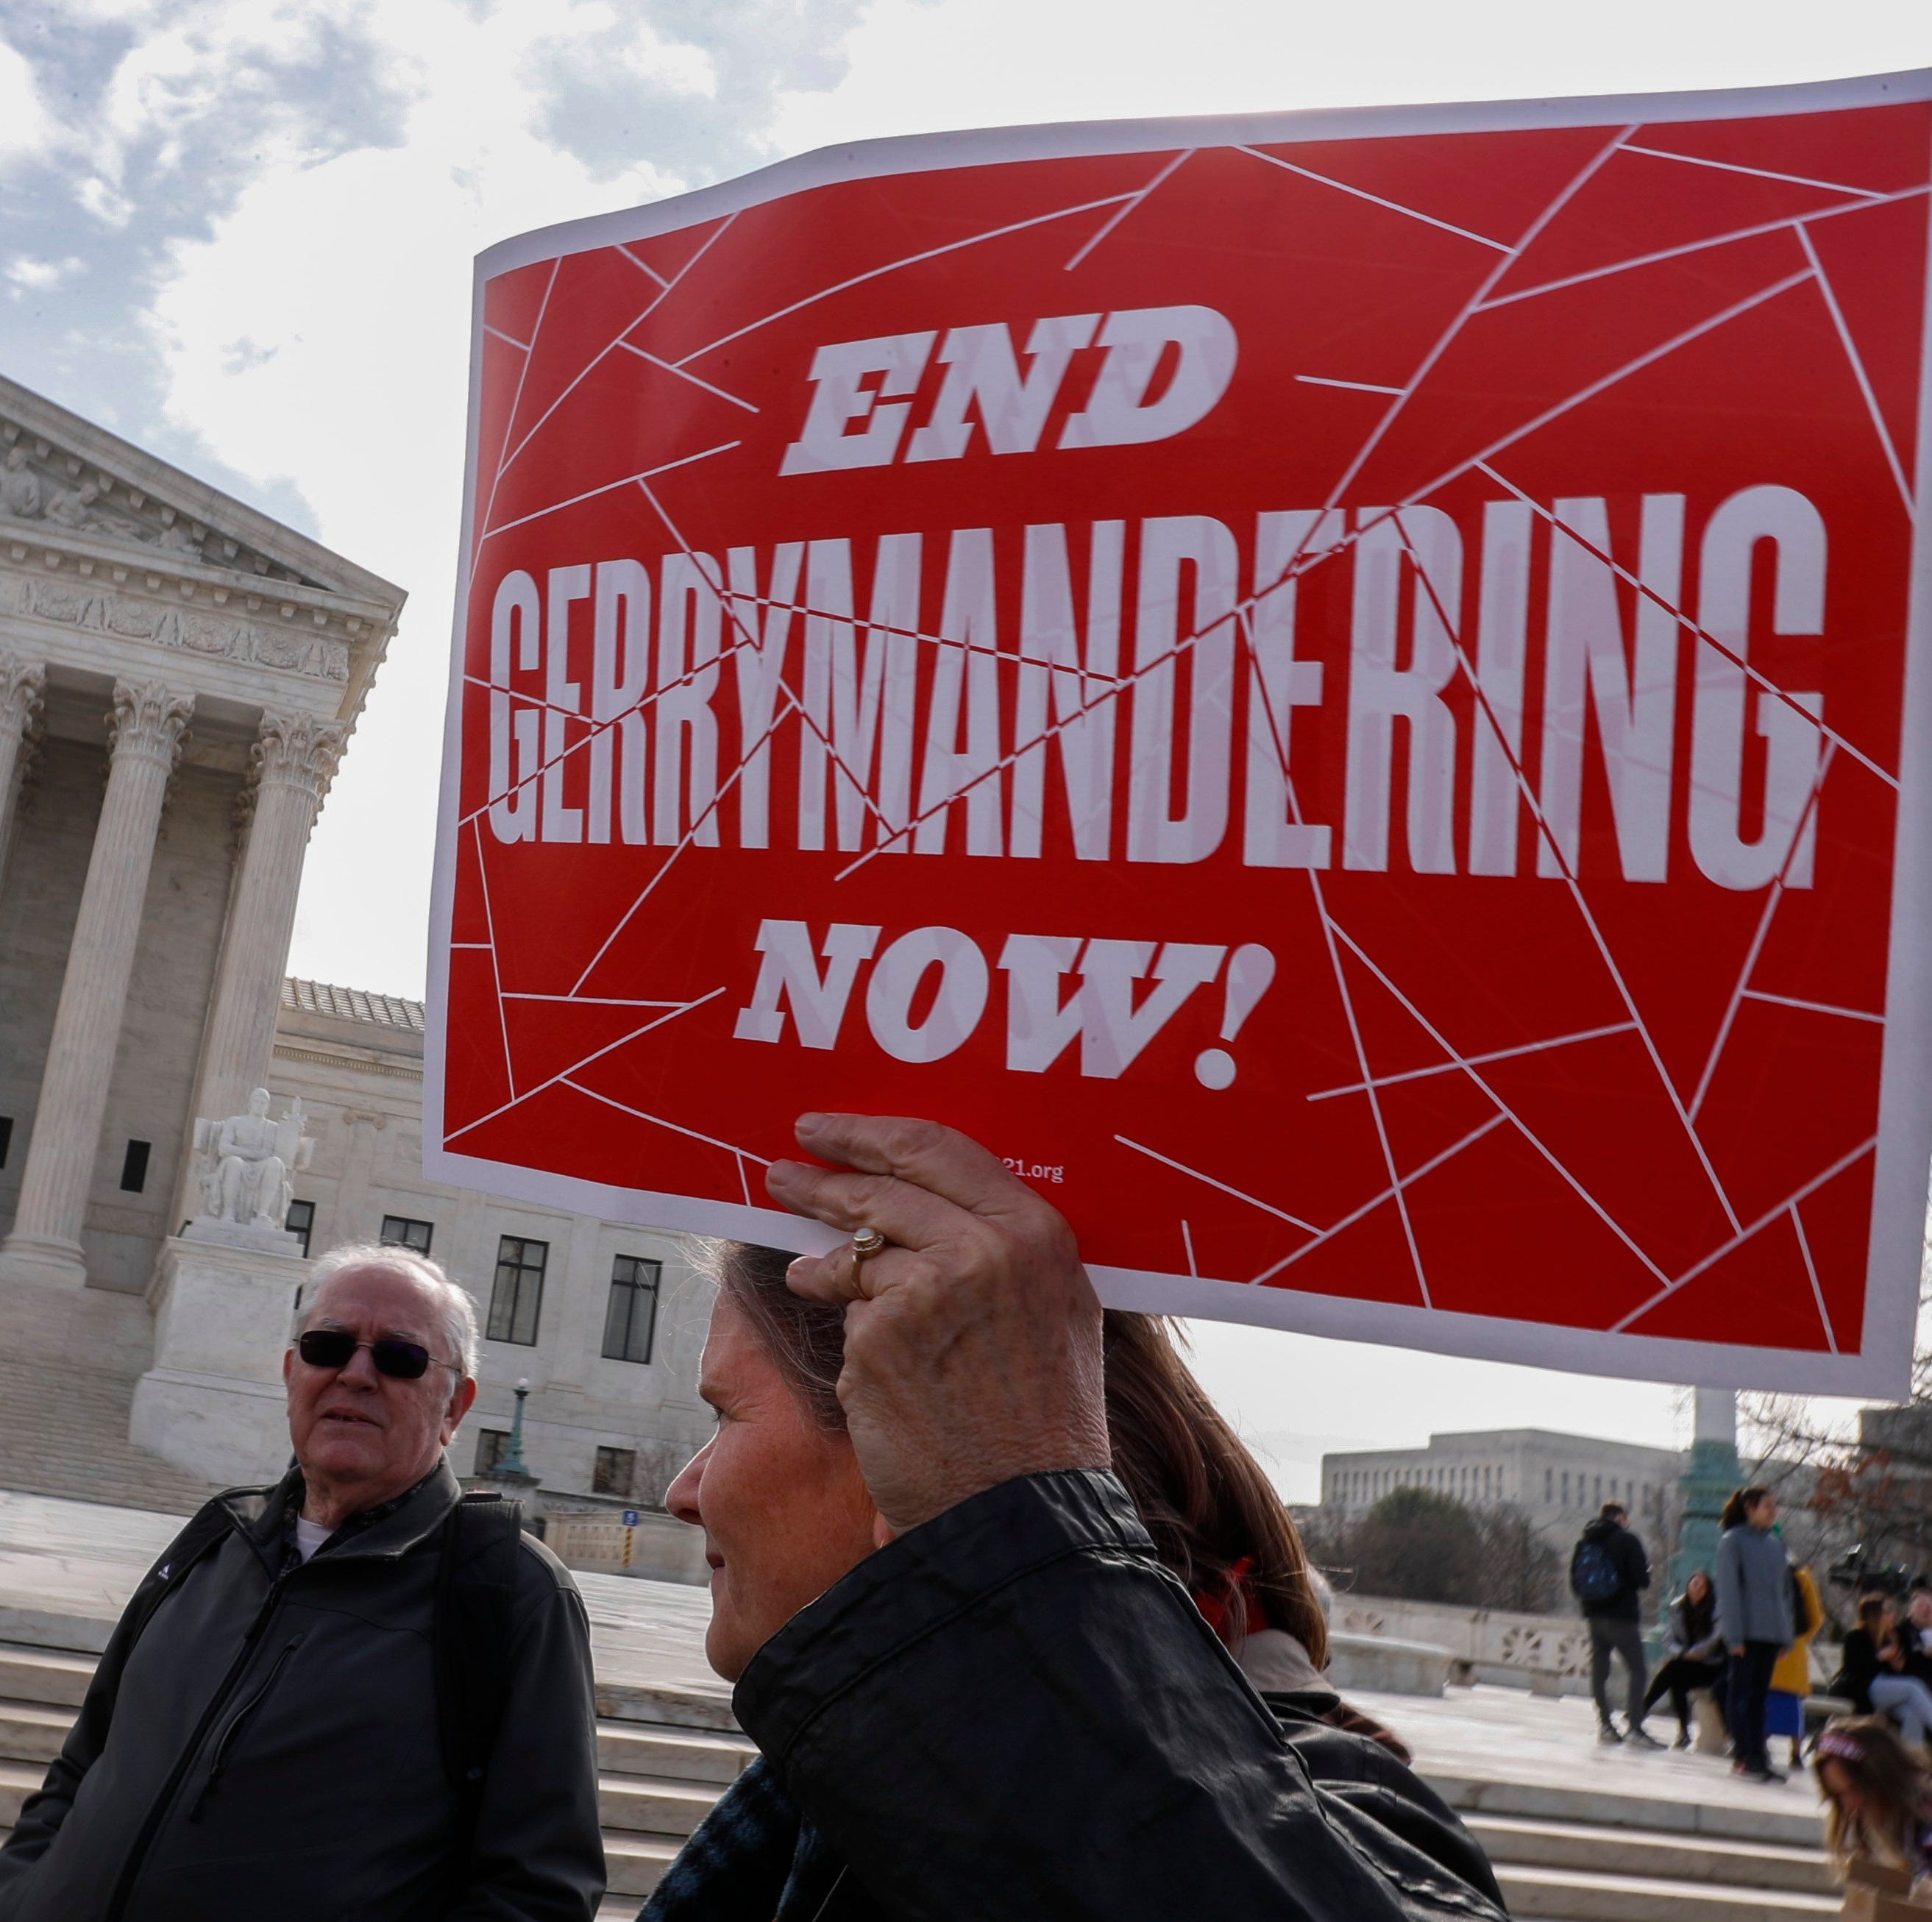 Lower courts implore justices: Stop rigged elections | Brian Dickerson